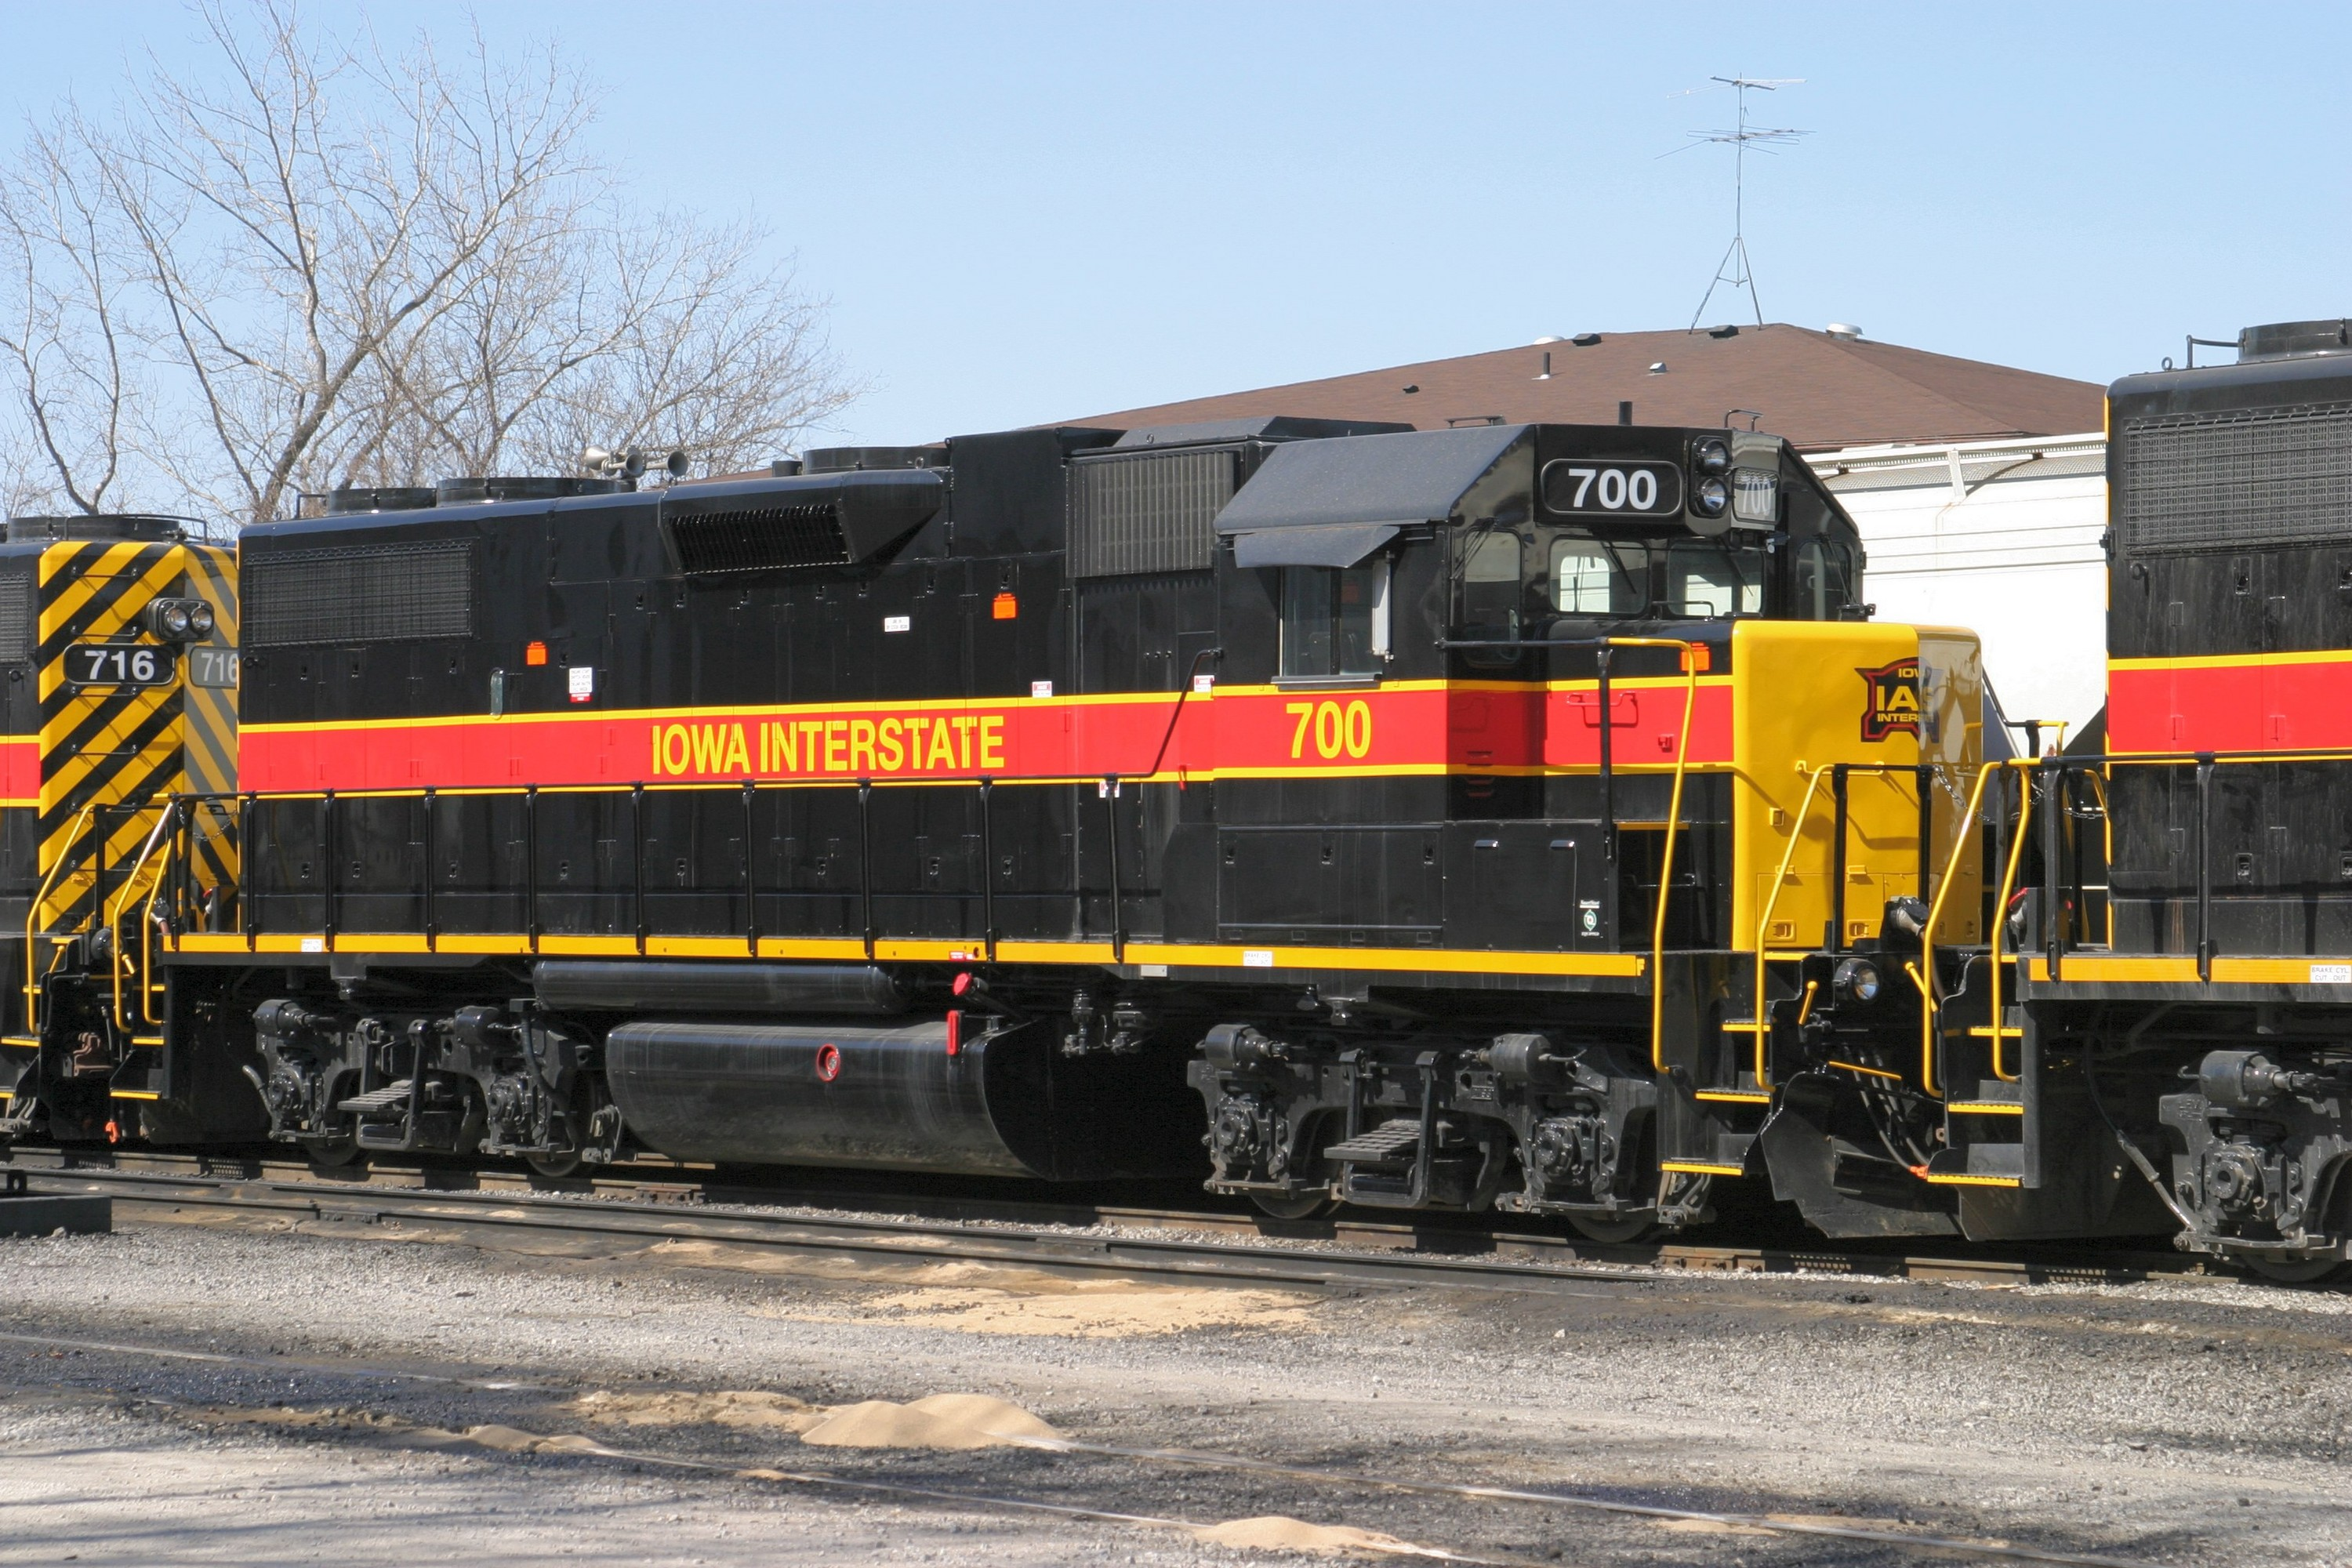 IAIS 700 at Iowa City, IA on 18-Mar-2005